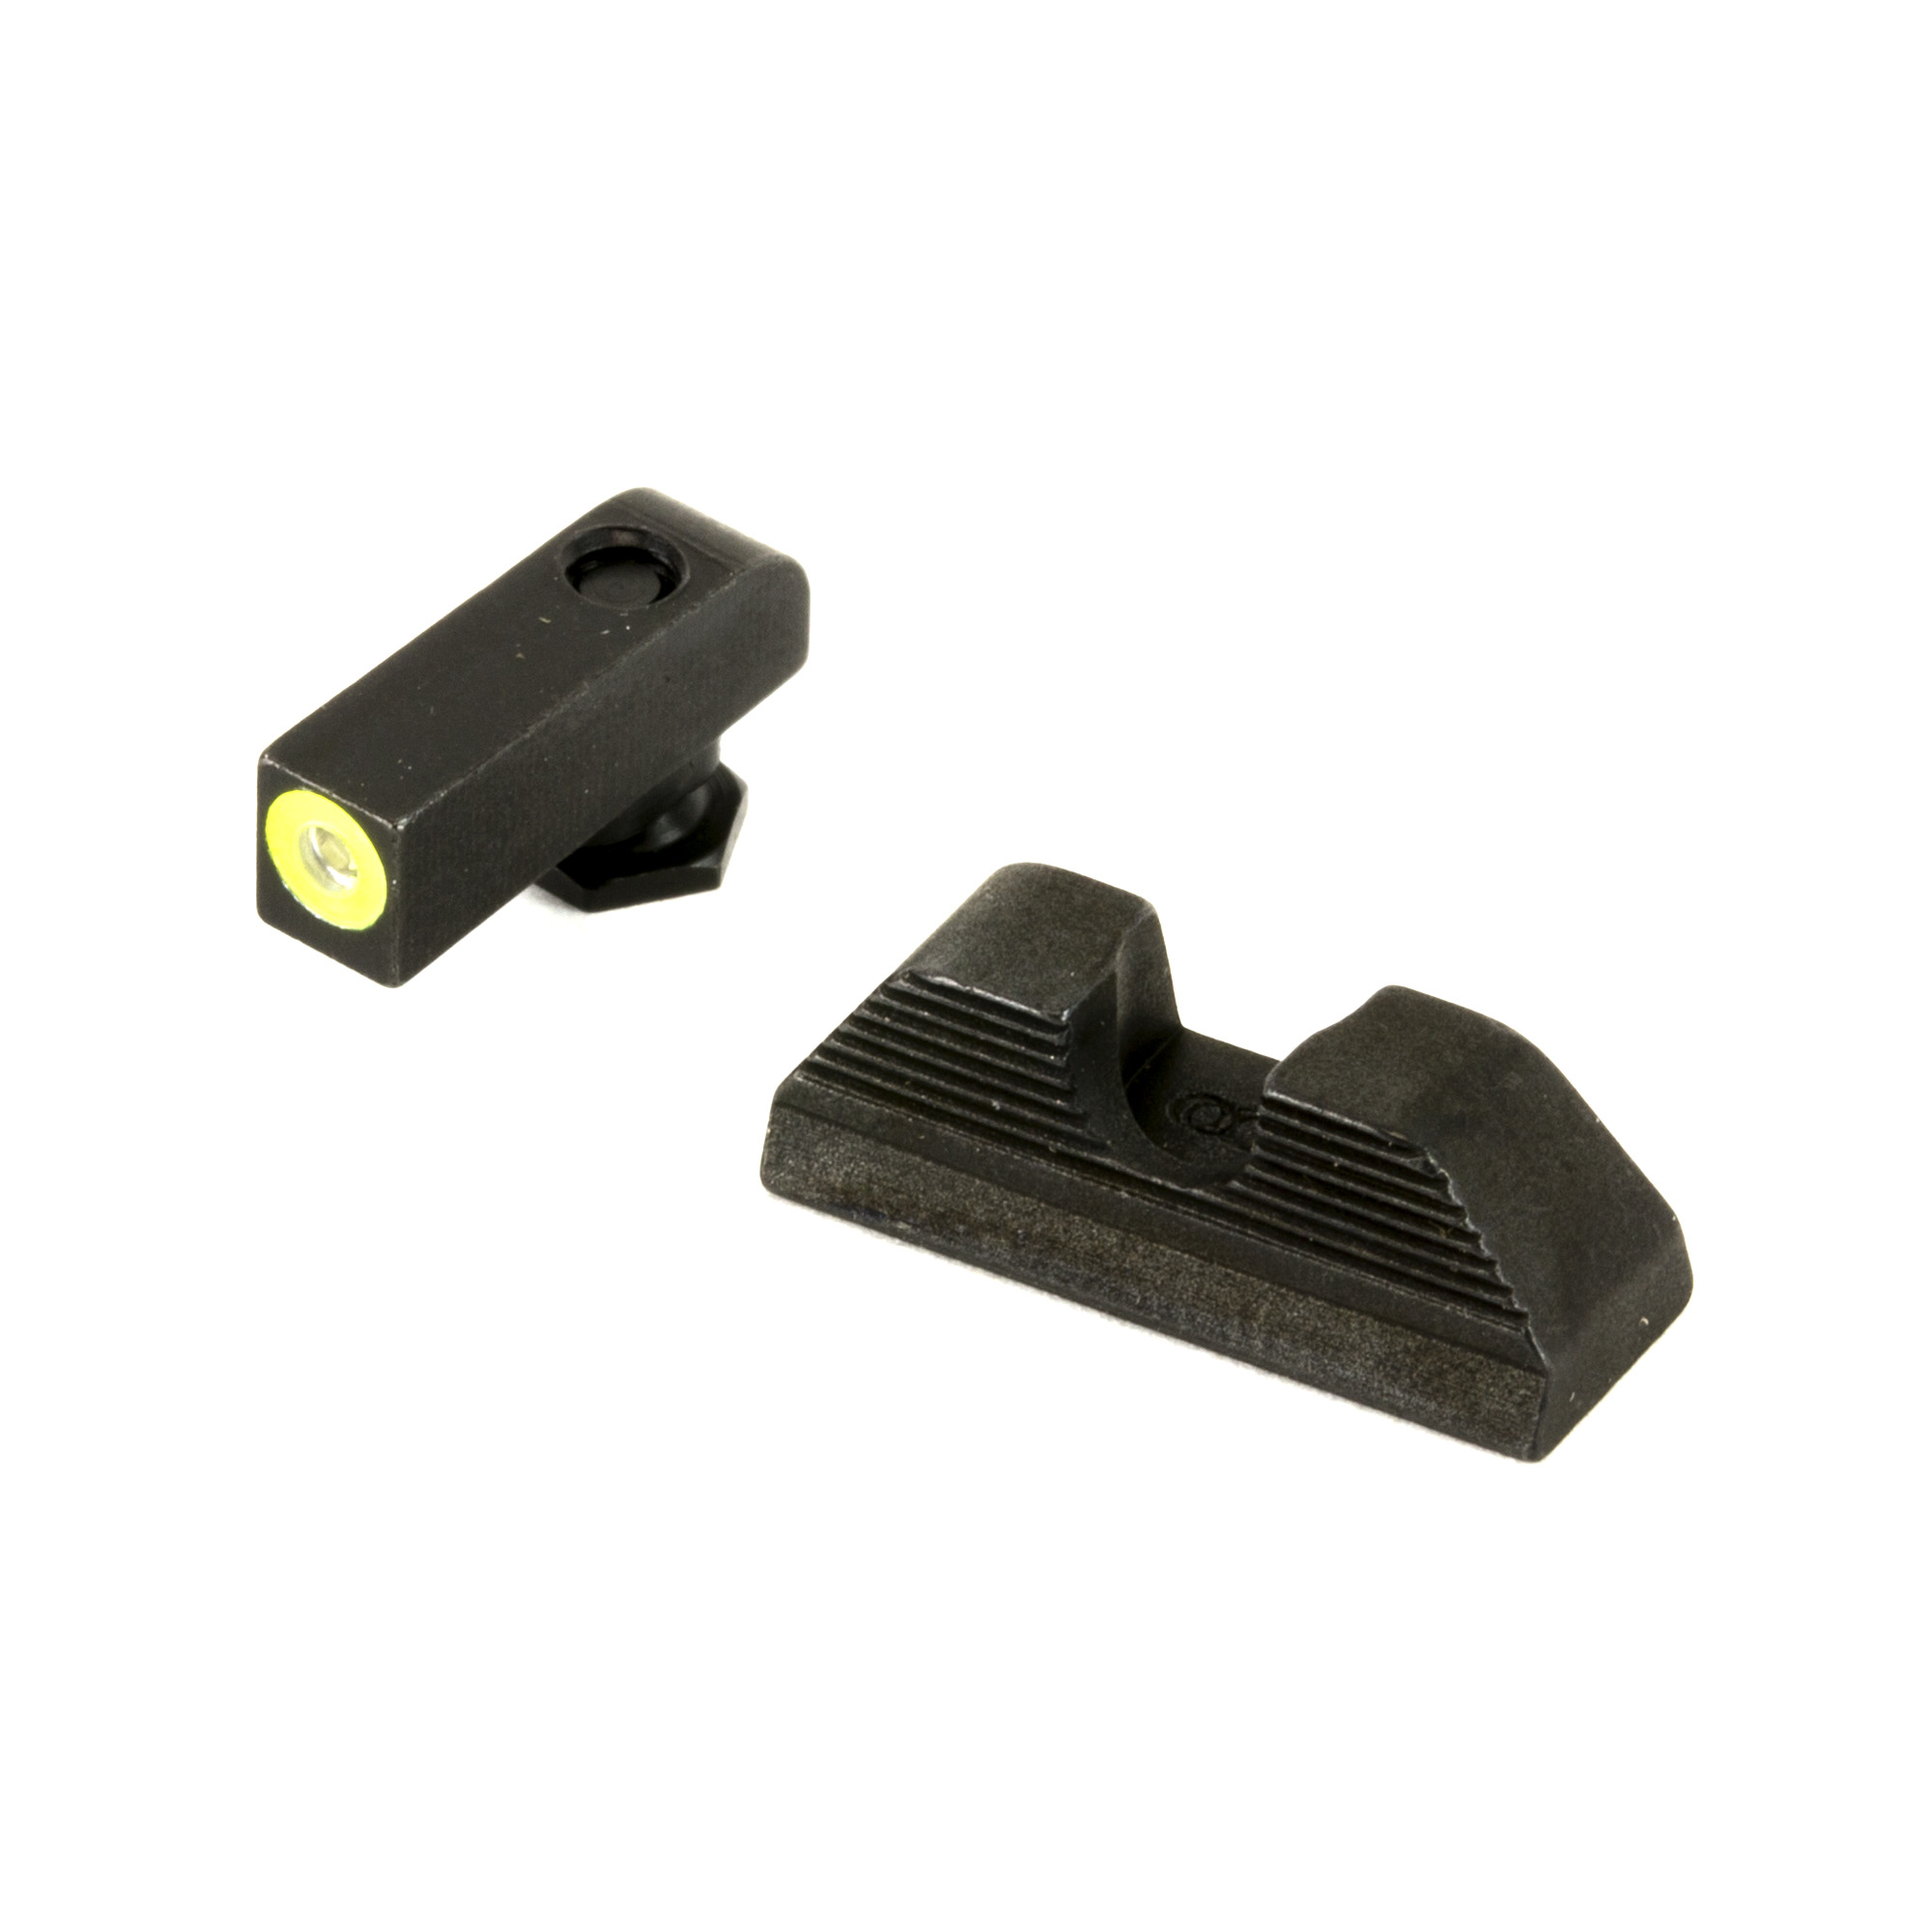 """This set was designed for rapid target acquisition"""" and is composed of a large"""" highly visible front sight and a black serrated U-notch rear. The simplicity of this combination minimizes distraction and greatly reduces the time between threat identification and threat neutralization"""" and is the ideal choice for any EDC weapon."""